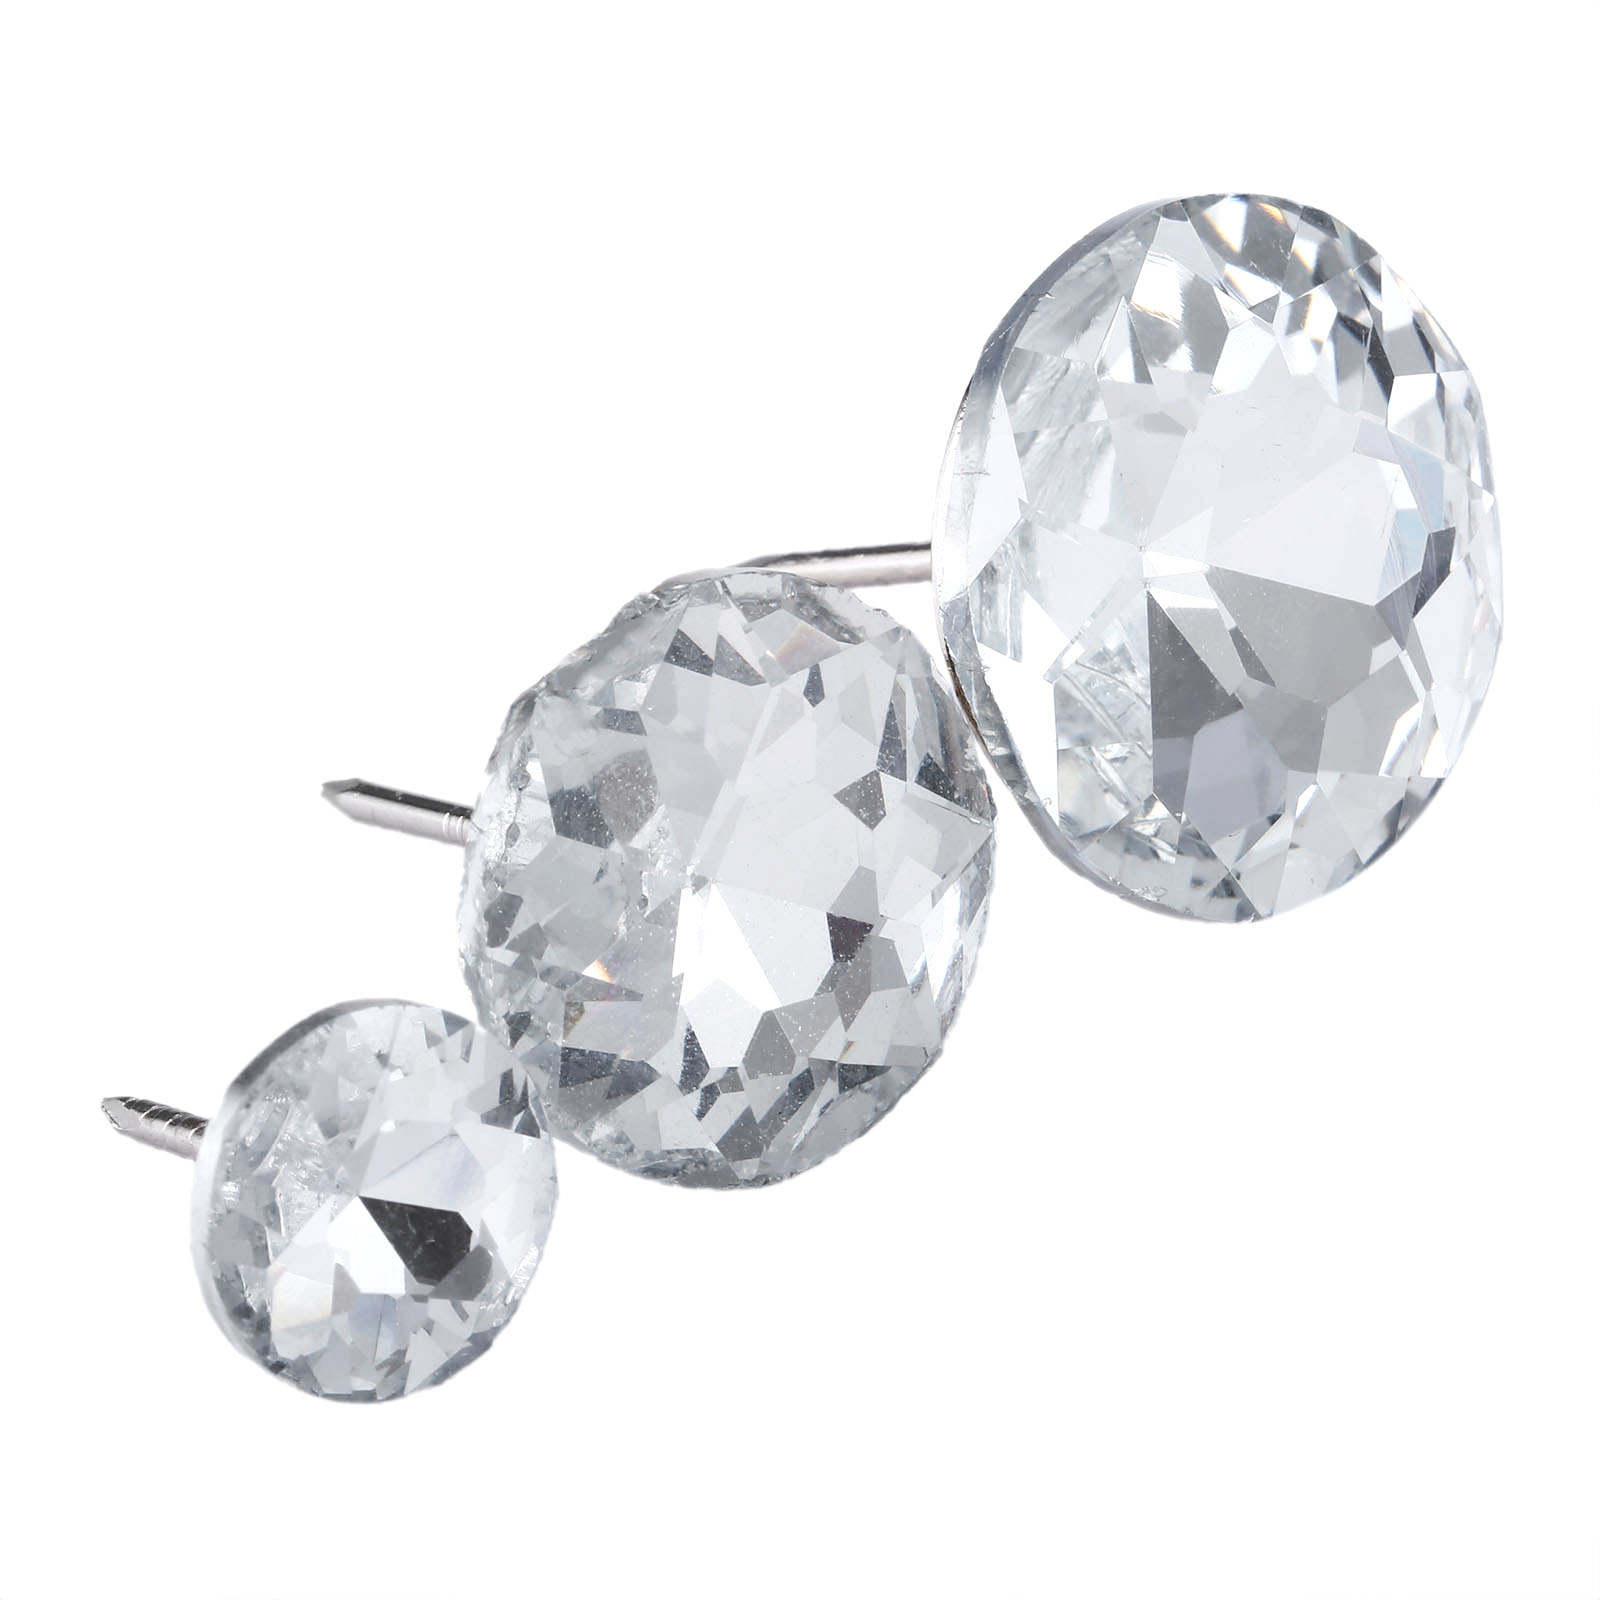 6 sizes Upholstery Nails Rhinestone Diamond Crystal Clear Upholstery Sew Buttons